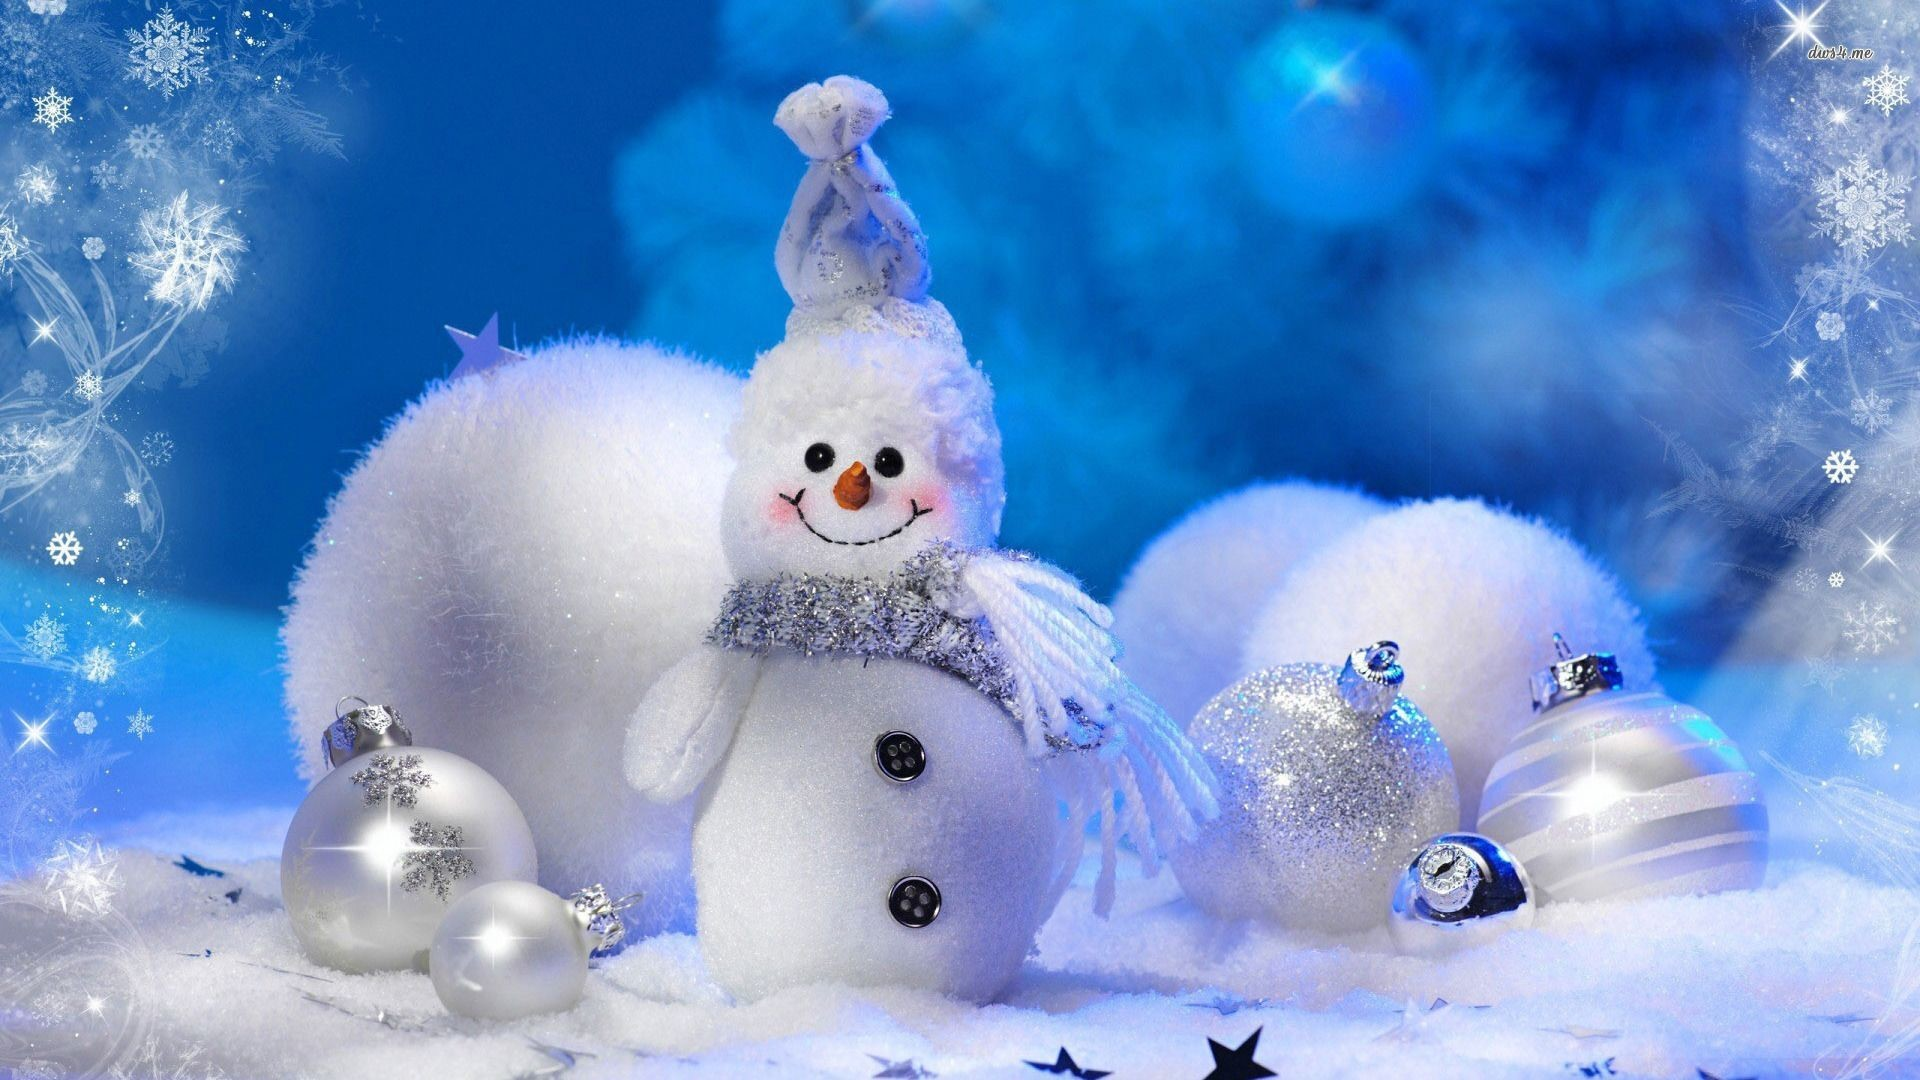 3d animated christmas wallpapers (62+ images)